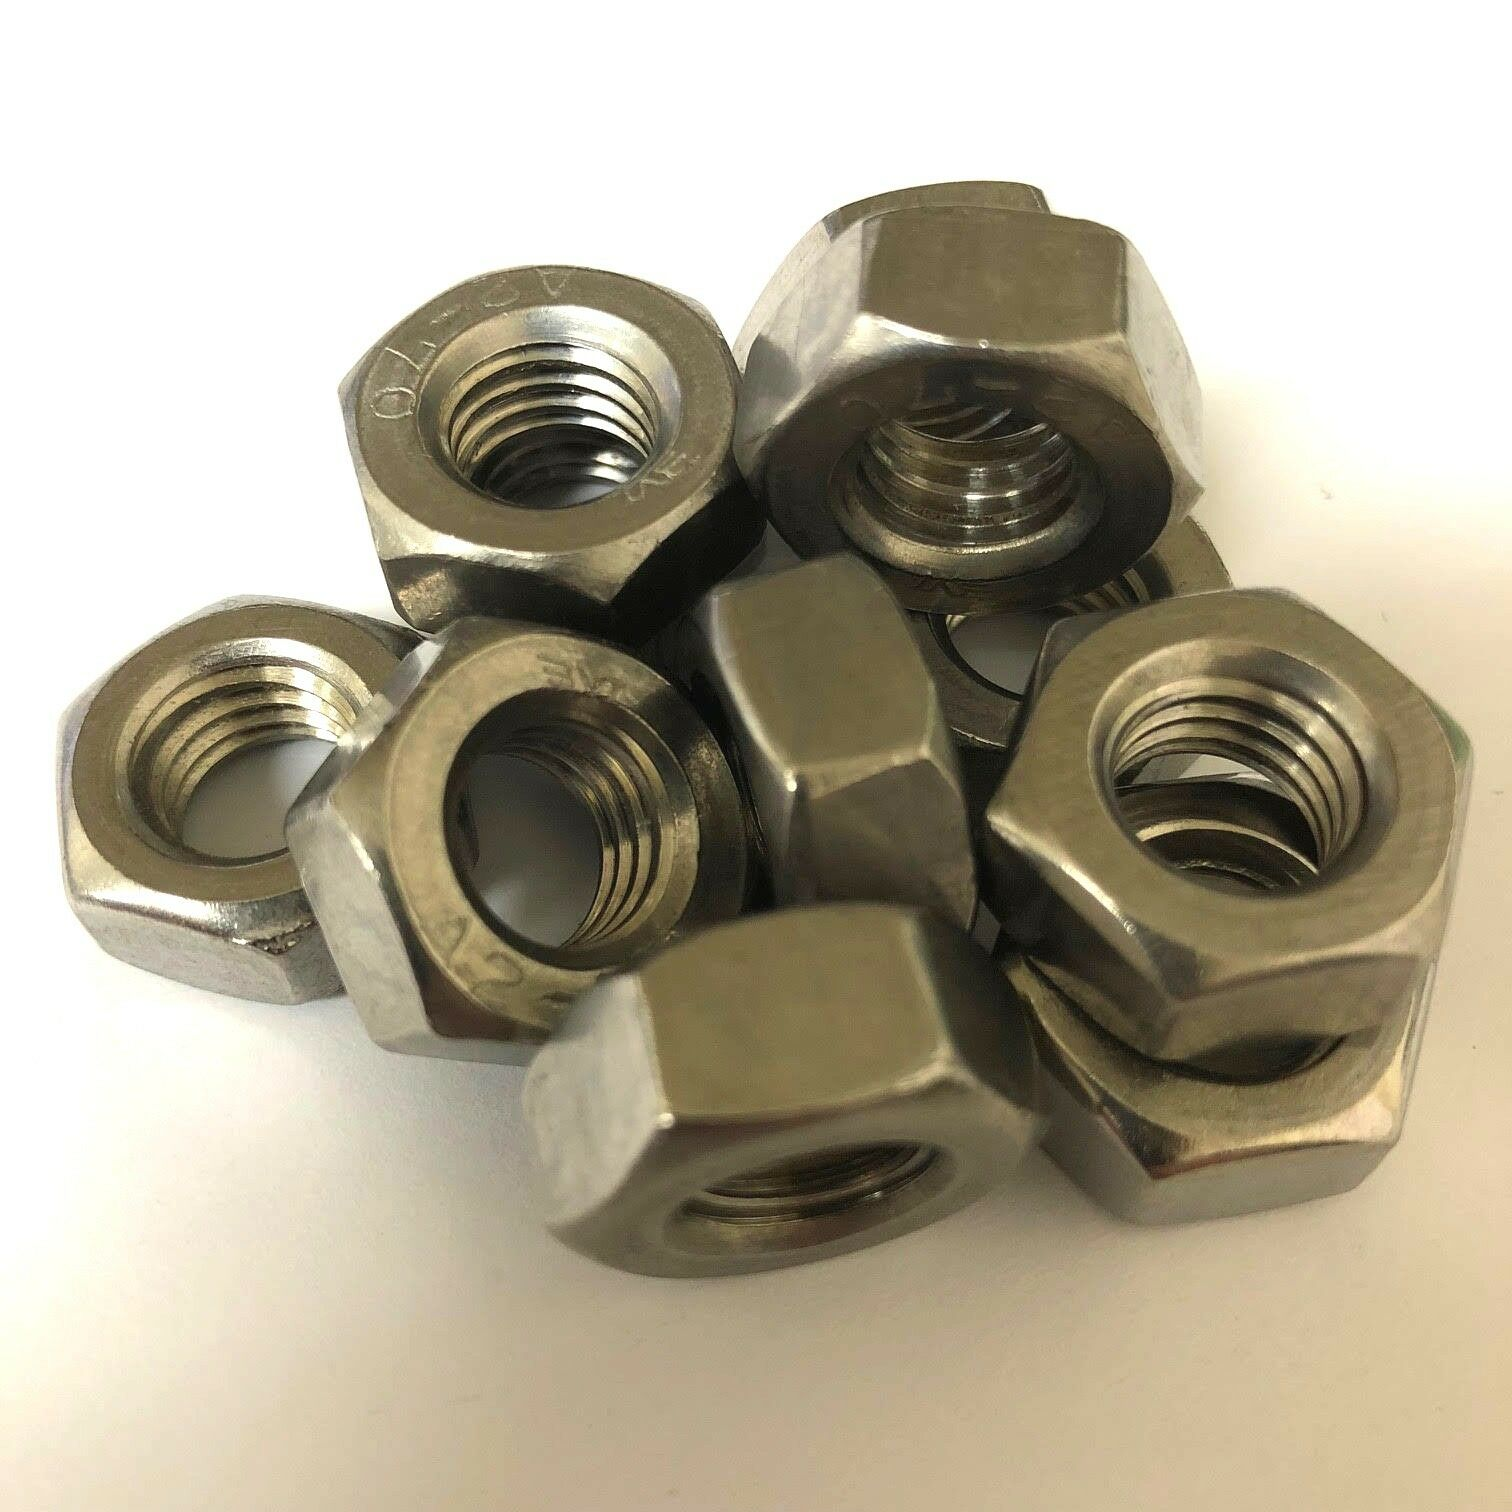 1 4  UNC FULL NUT, A2 STAINLESS STEEL, IMPERIAL FINE HEX NUTS